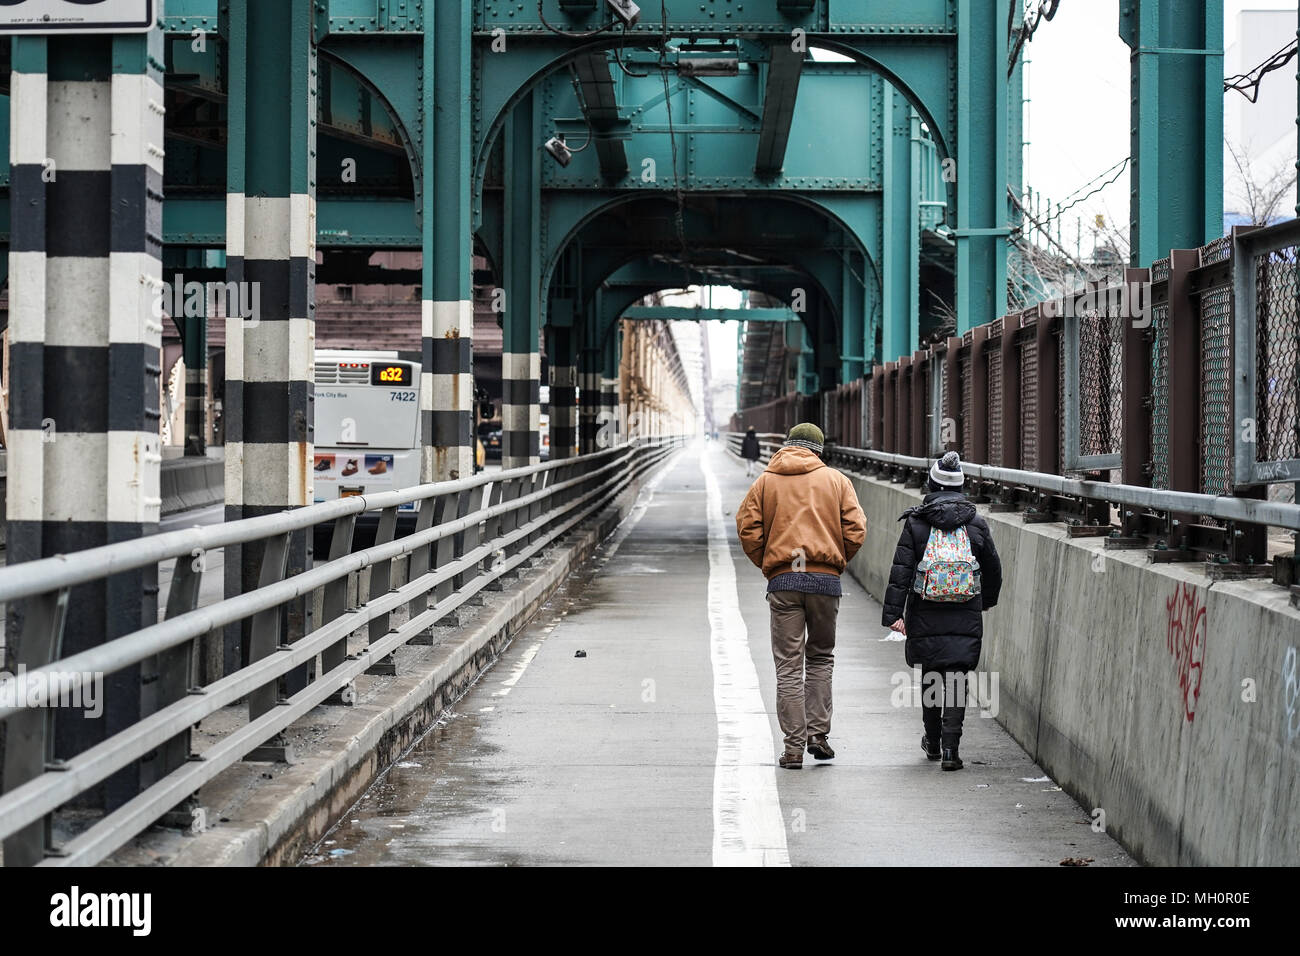 A view of pedestrians on the Ed Koch Queensboro Bridge in New York City in the United States. From a series of travel photos in the United States. Pho Stock Photo